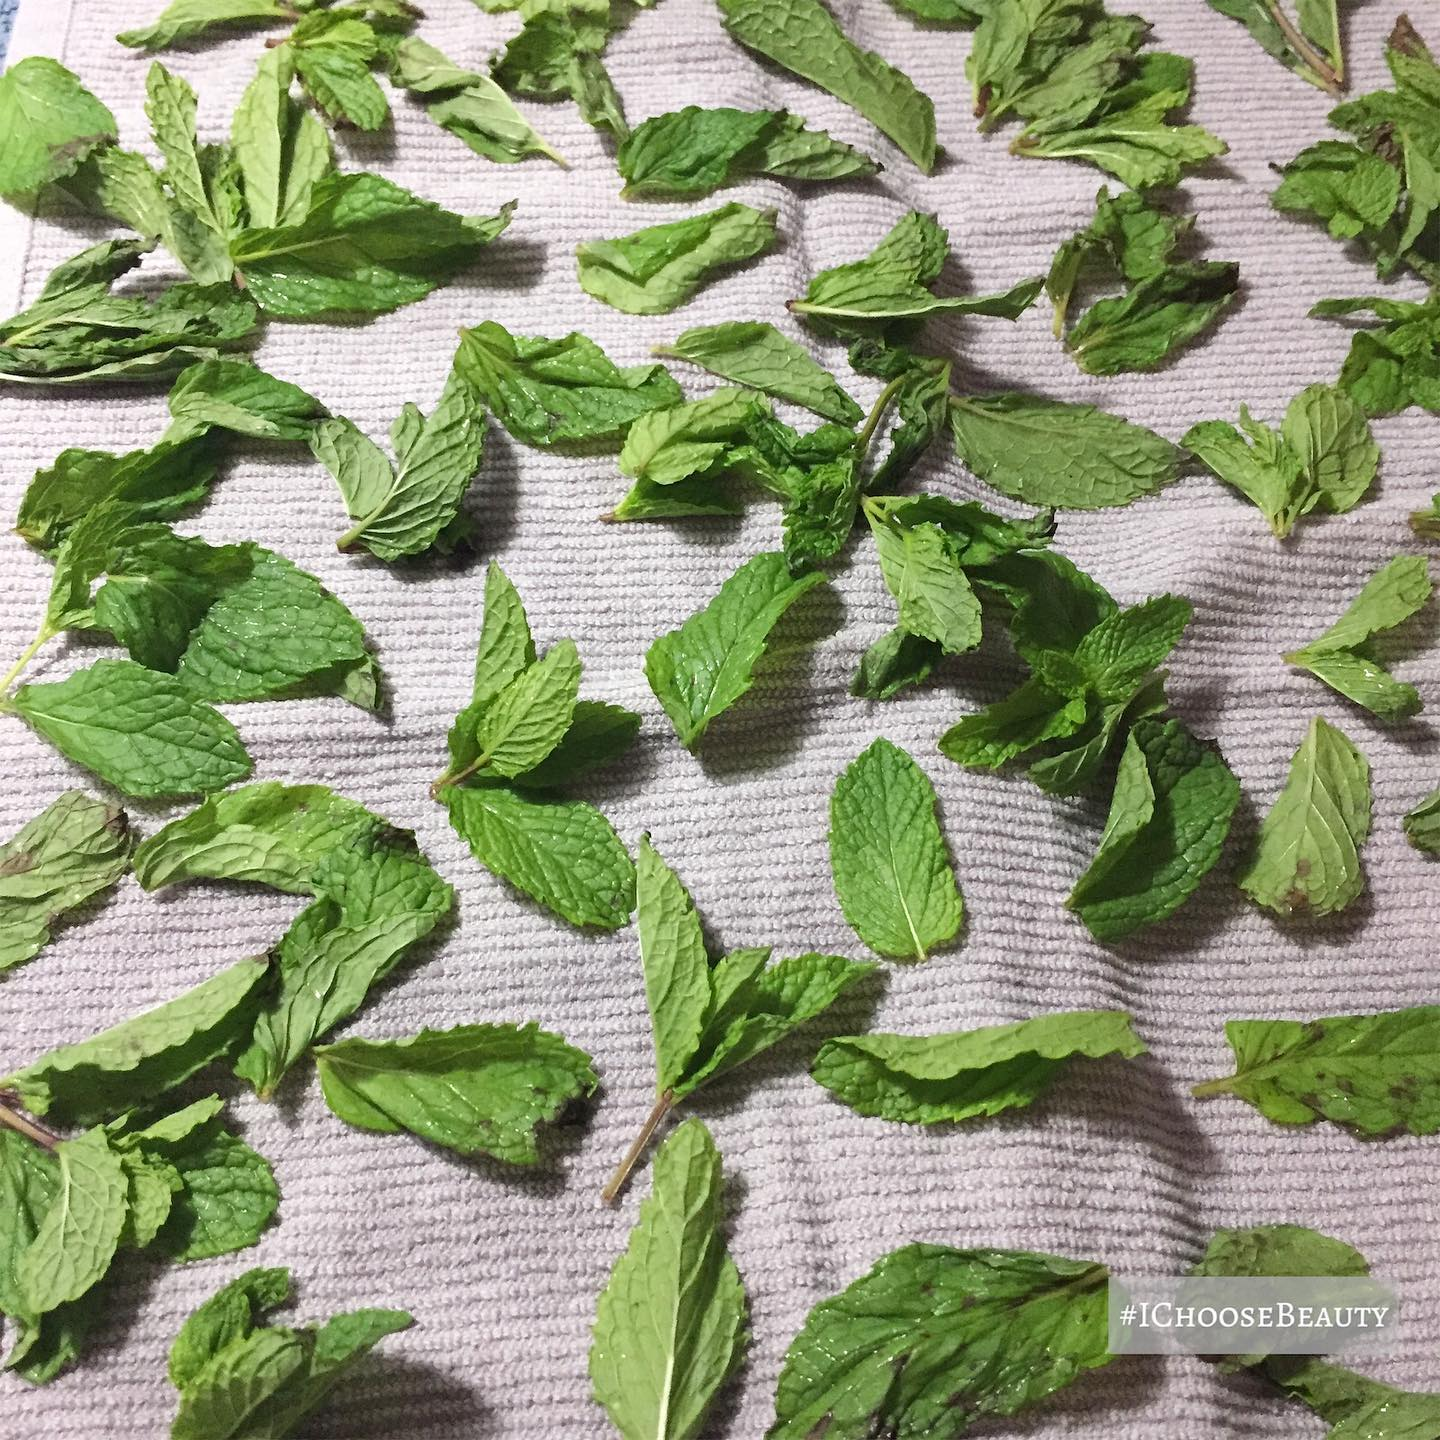 I'm in heaven over here with the smell of these mint leaves! Made some delicious tea, and froze the rest for later.  #ichoosebeauty Day 2395